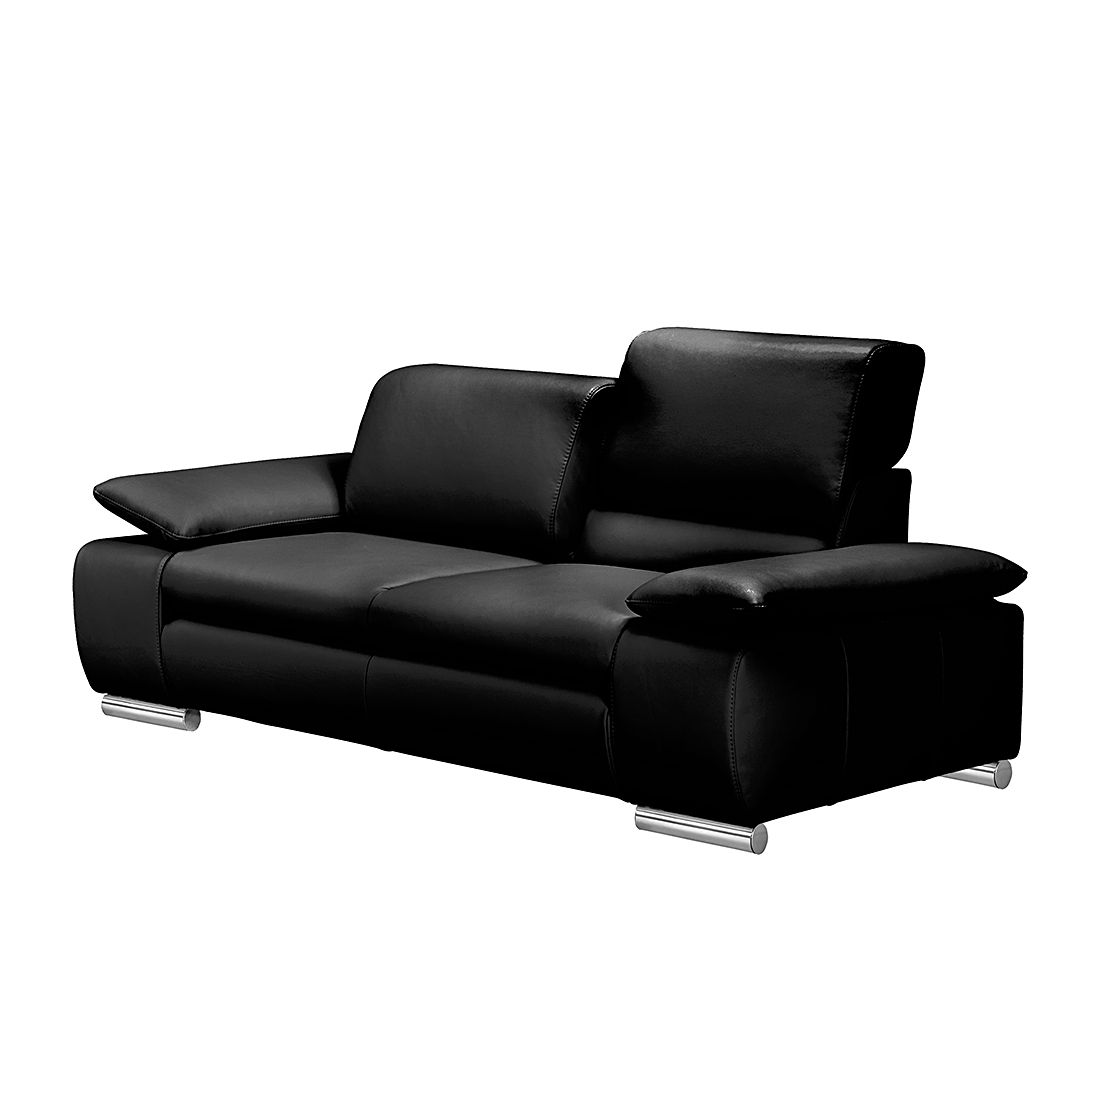 sofa masca 3 sitzer kunstleder schwarz fredriks wohnzimmer. Black Bedroom Furniture Sets. Home Design Ideas